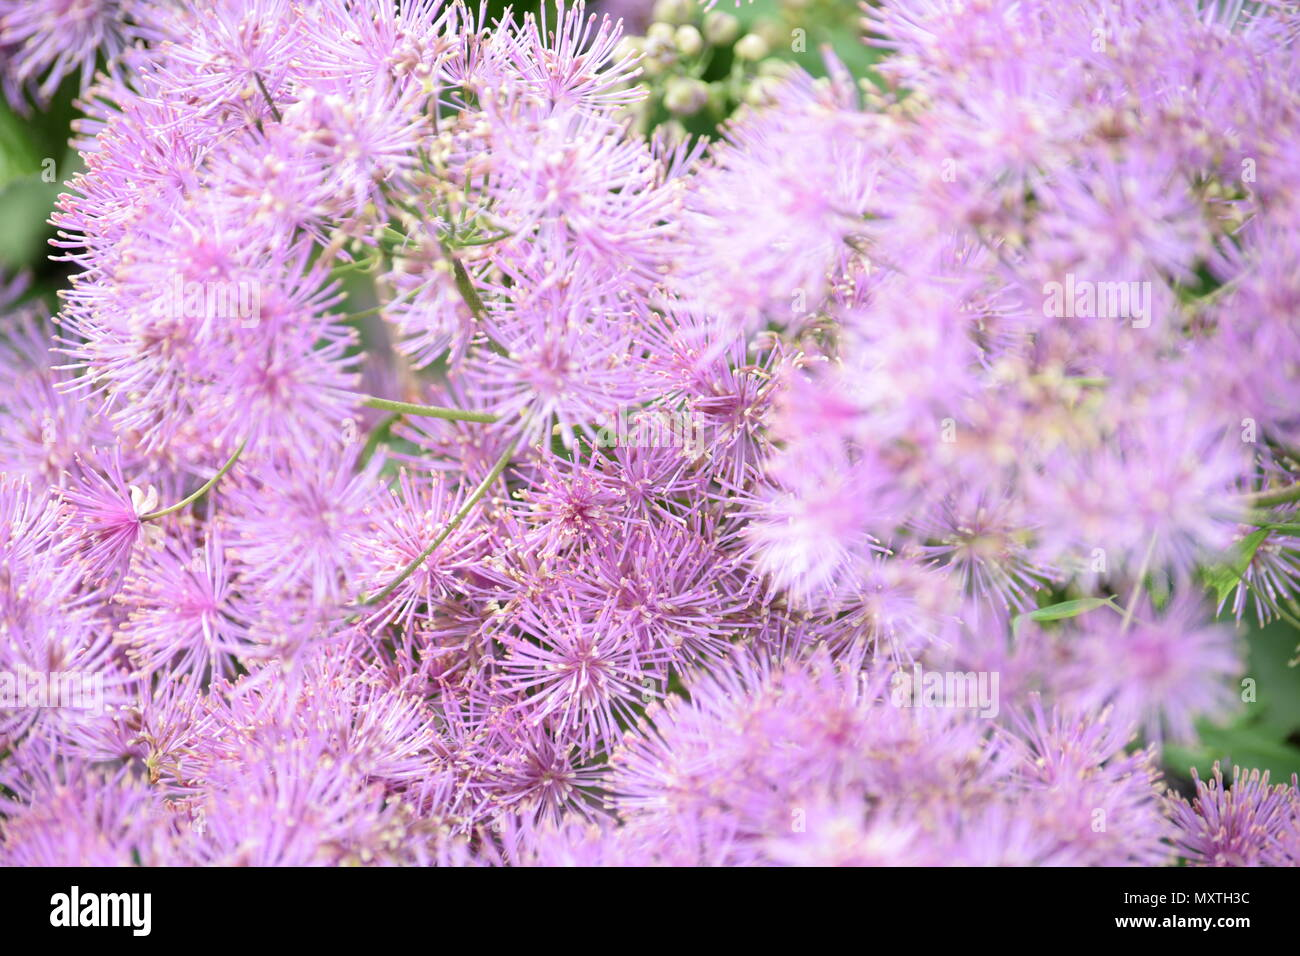 Rue Plant Stock Photos & Rue Plant Stock Images - Alamy